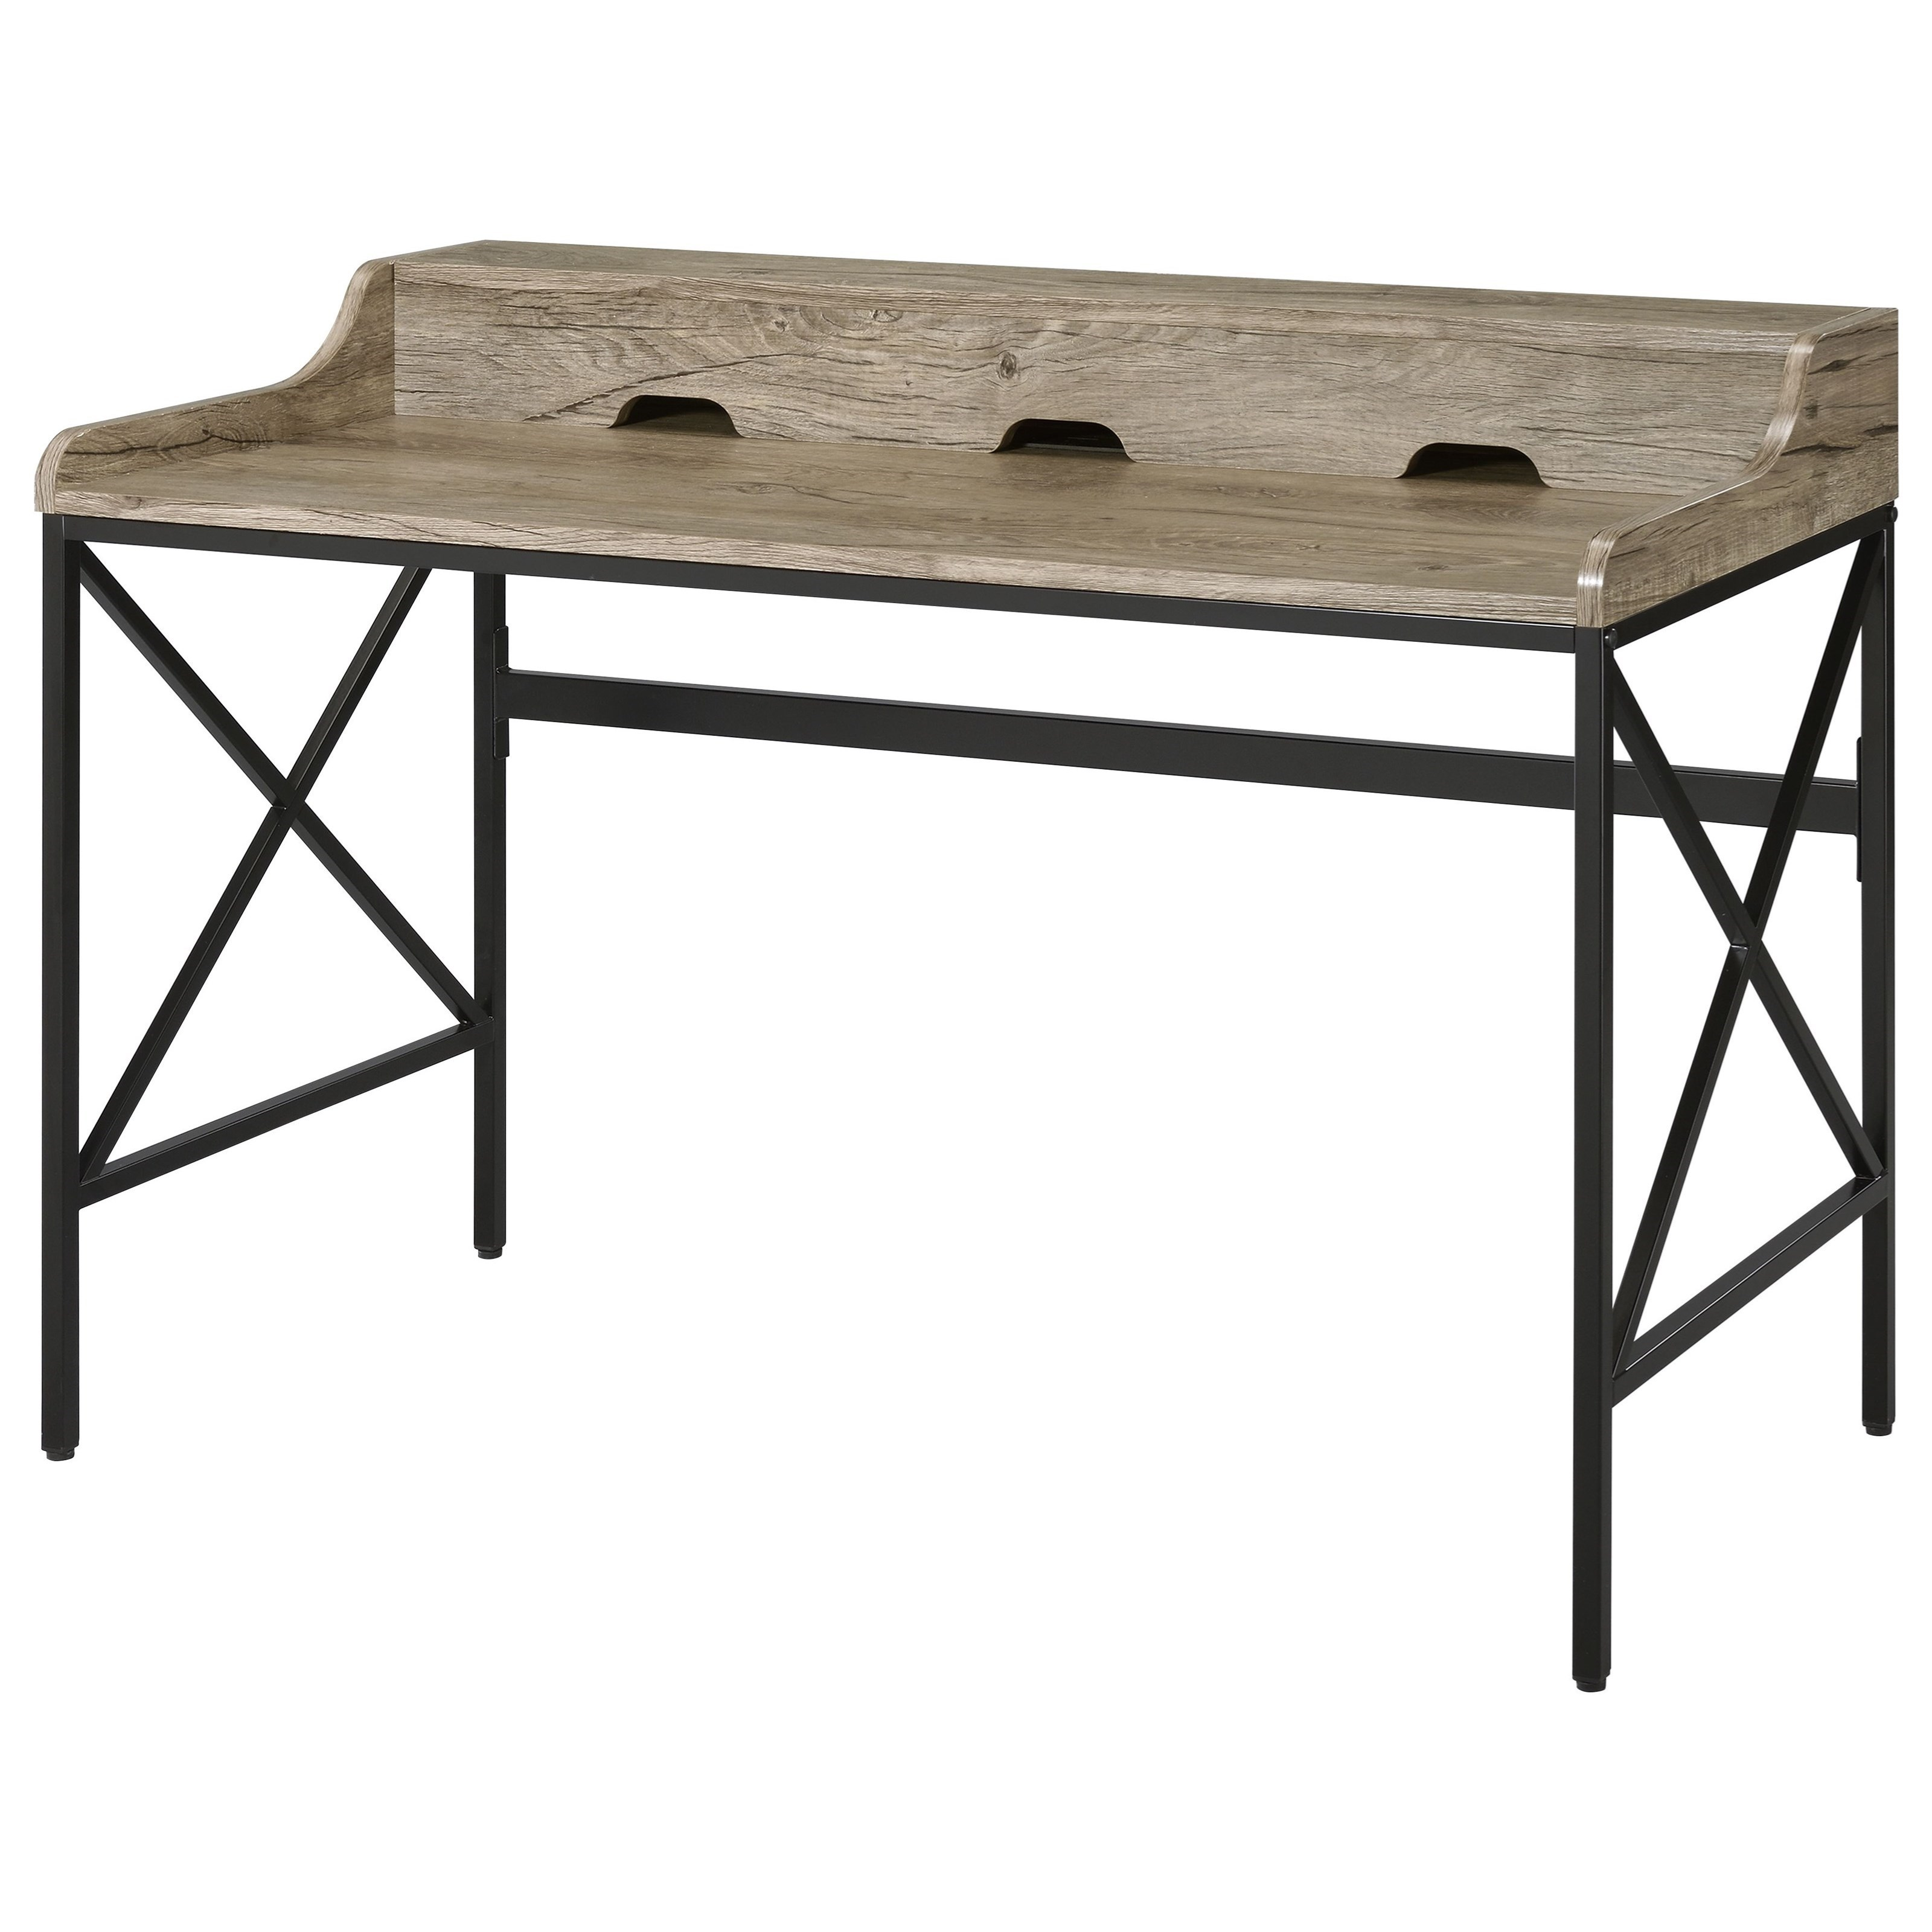 Corday Desk with USB Port by Steve Silver at Walker's Furniture